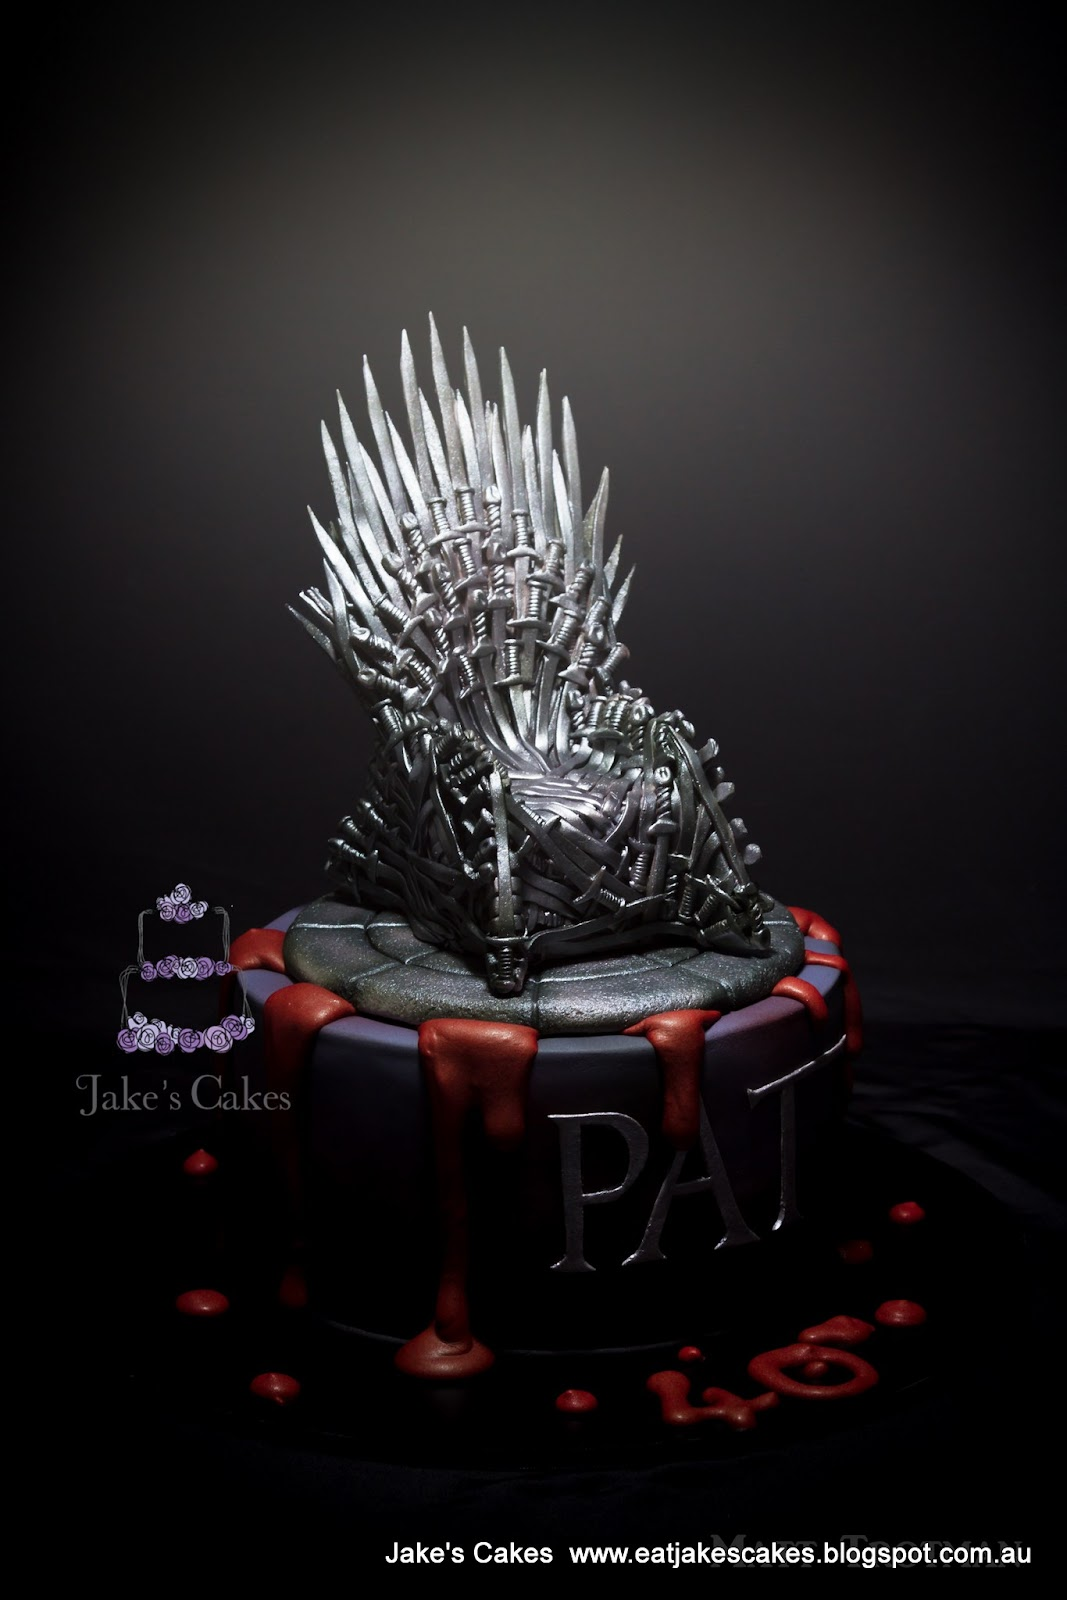 Game of thrones chair cake - Game Of Thrones Cake